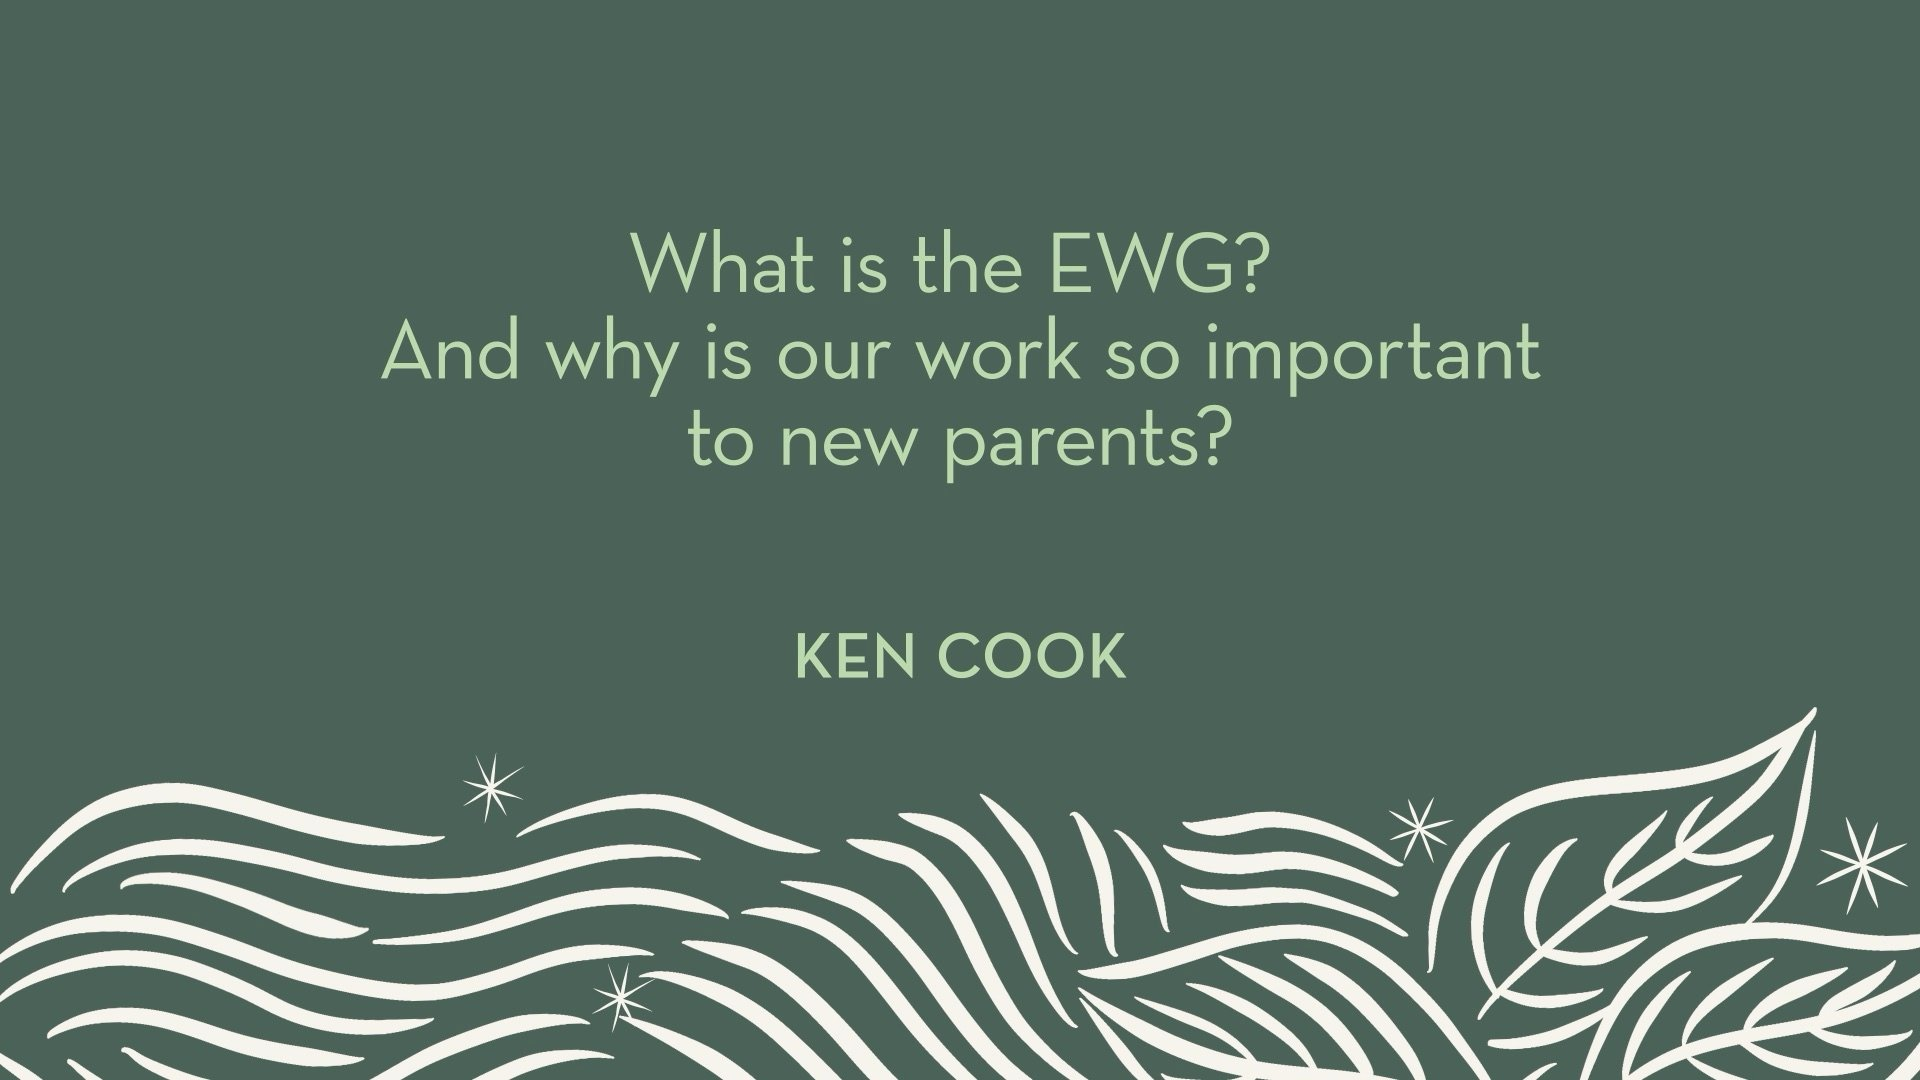 Ken Cook | What is the EWG? And why is our work so important to new parents?